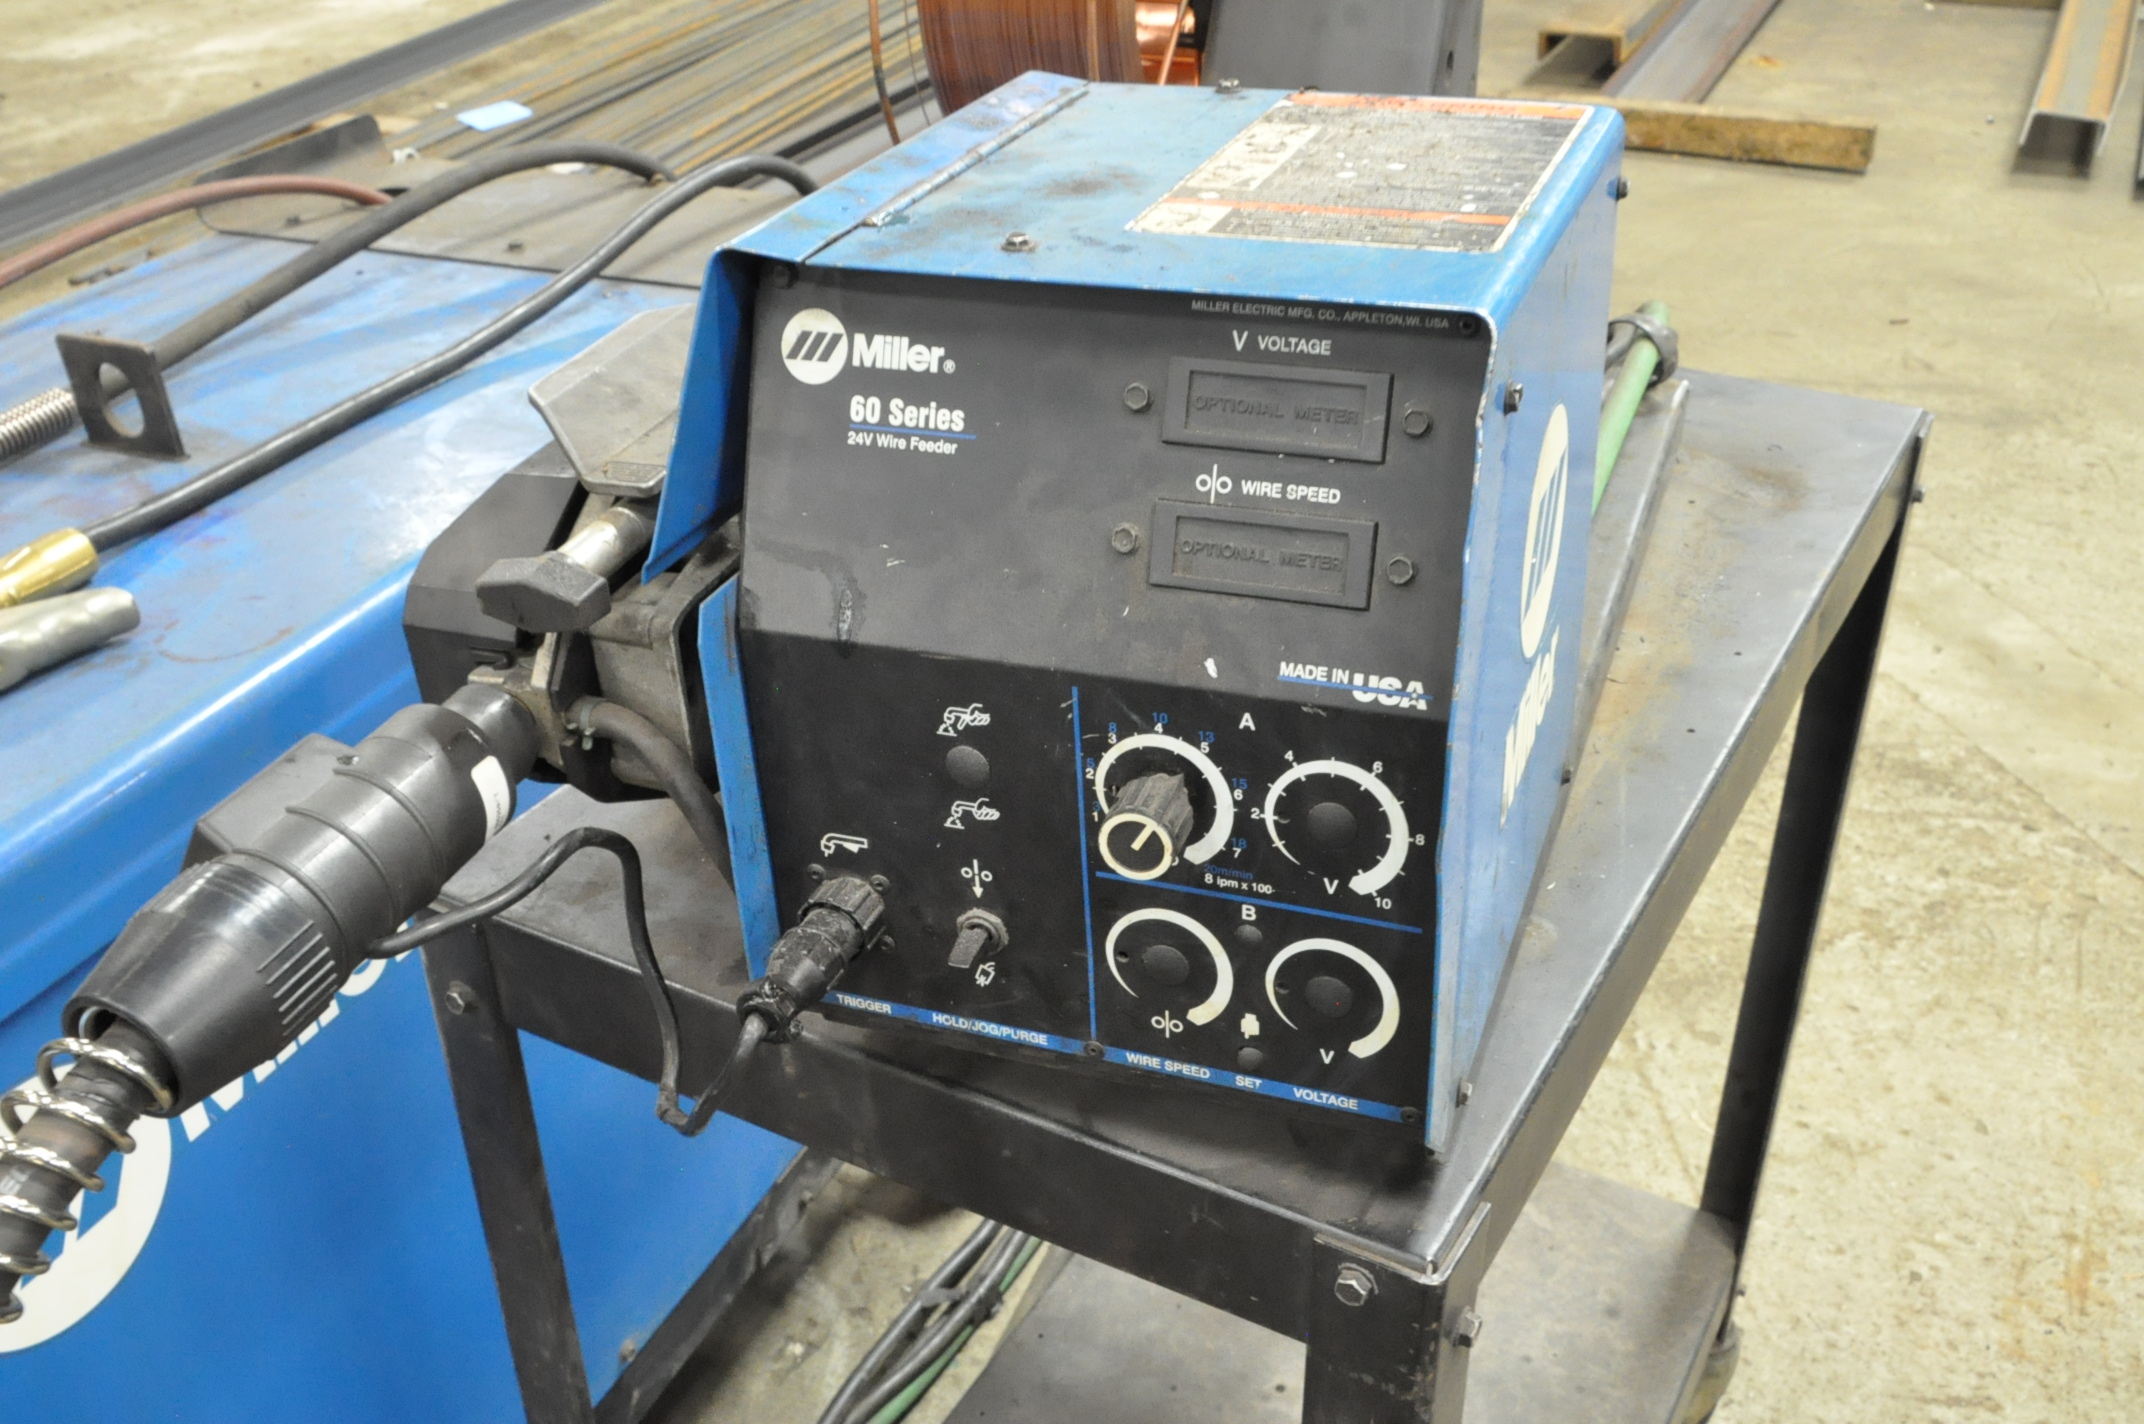 Miller Deltaweld 452, 450-Amp Capacity CV DC Arc Welding Power Source with Miller 60 Wire Feeder - Image 2 of 4